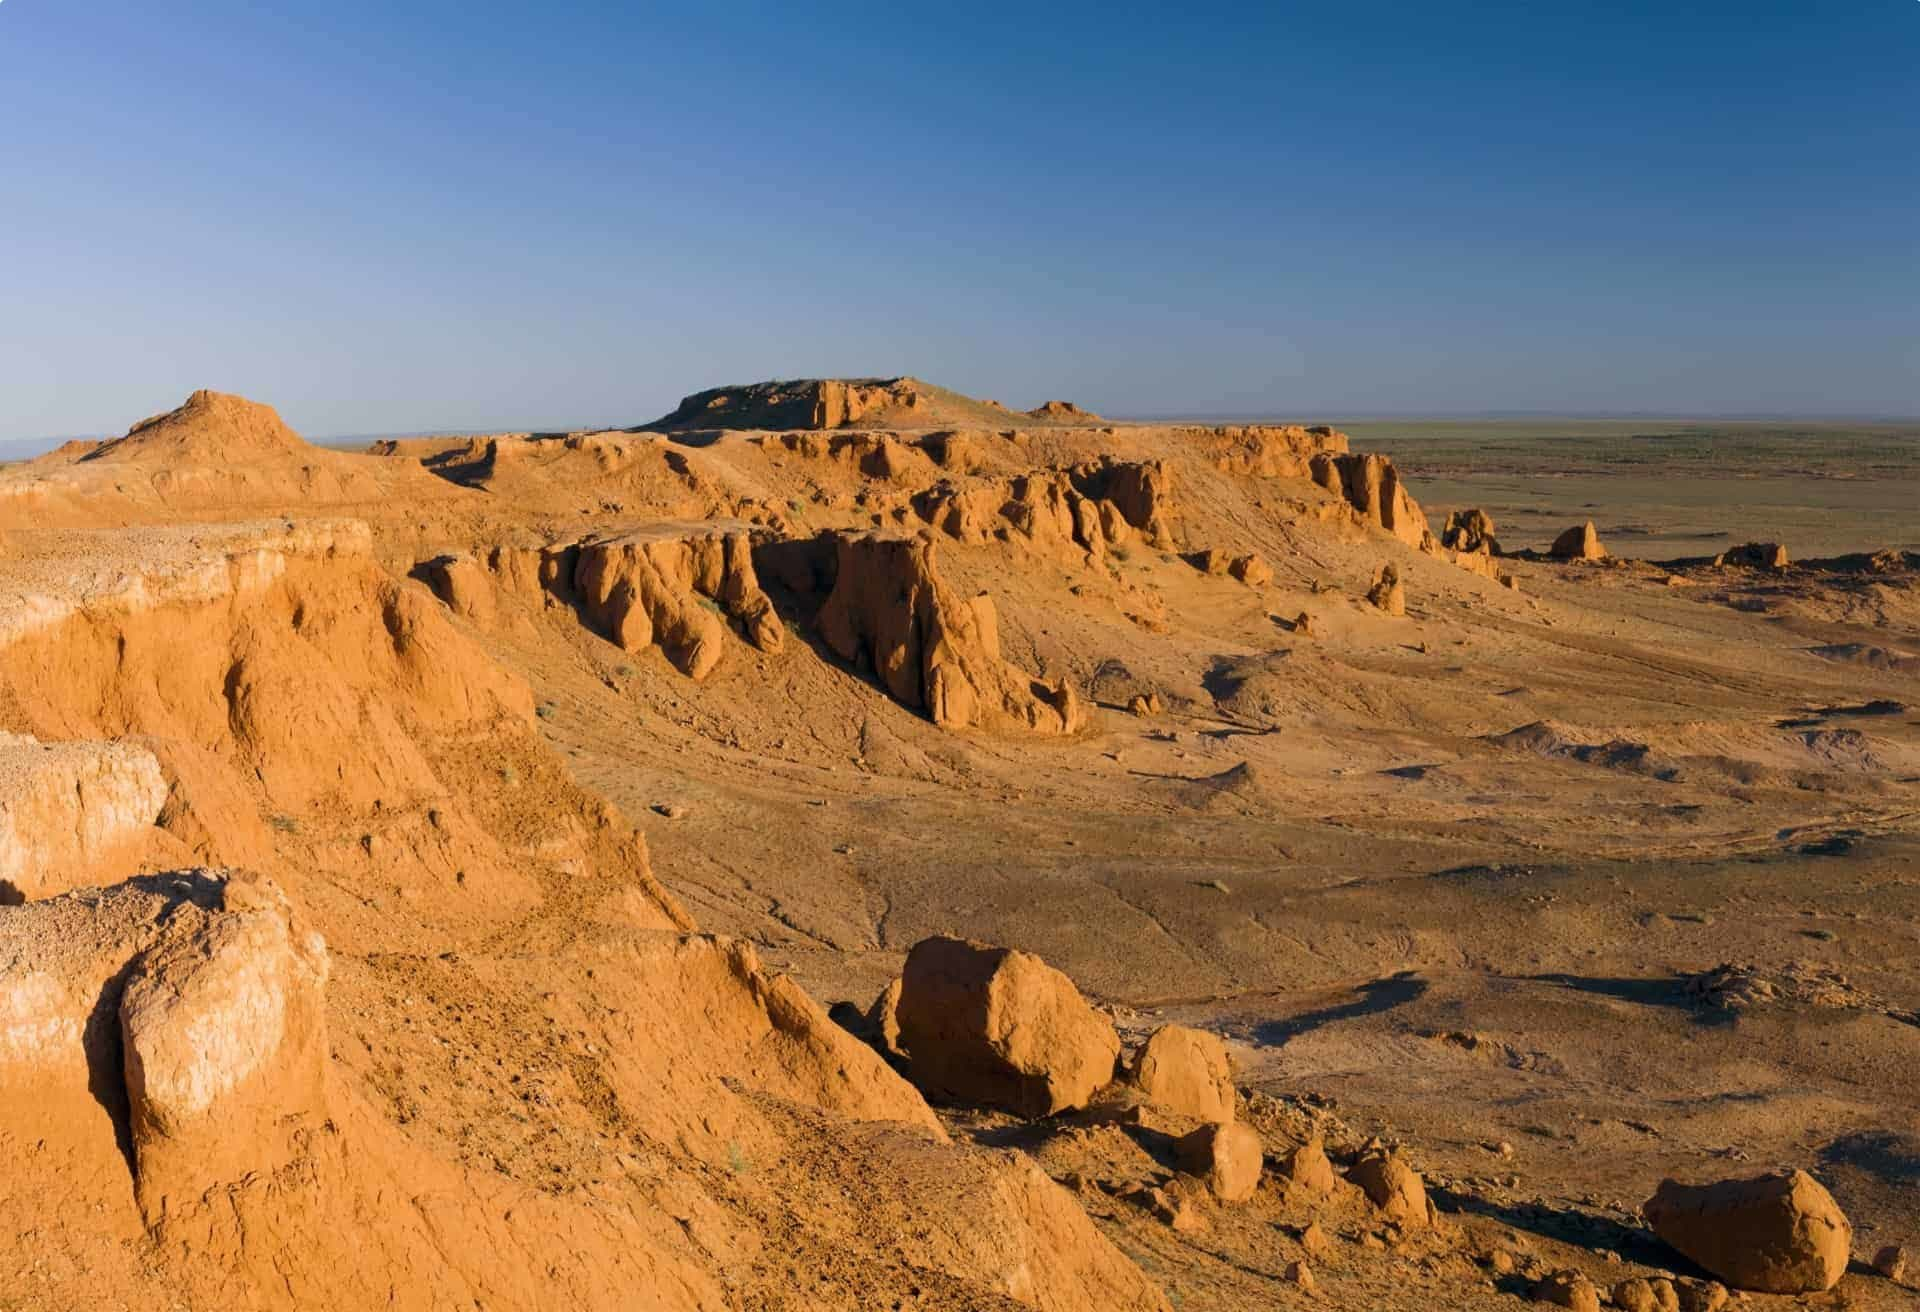 The Gobi desert is home to significant numbers of dinosaur fossils